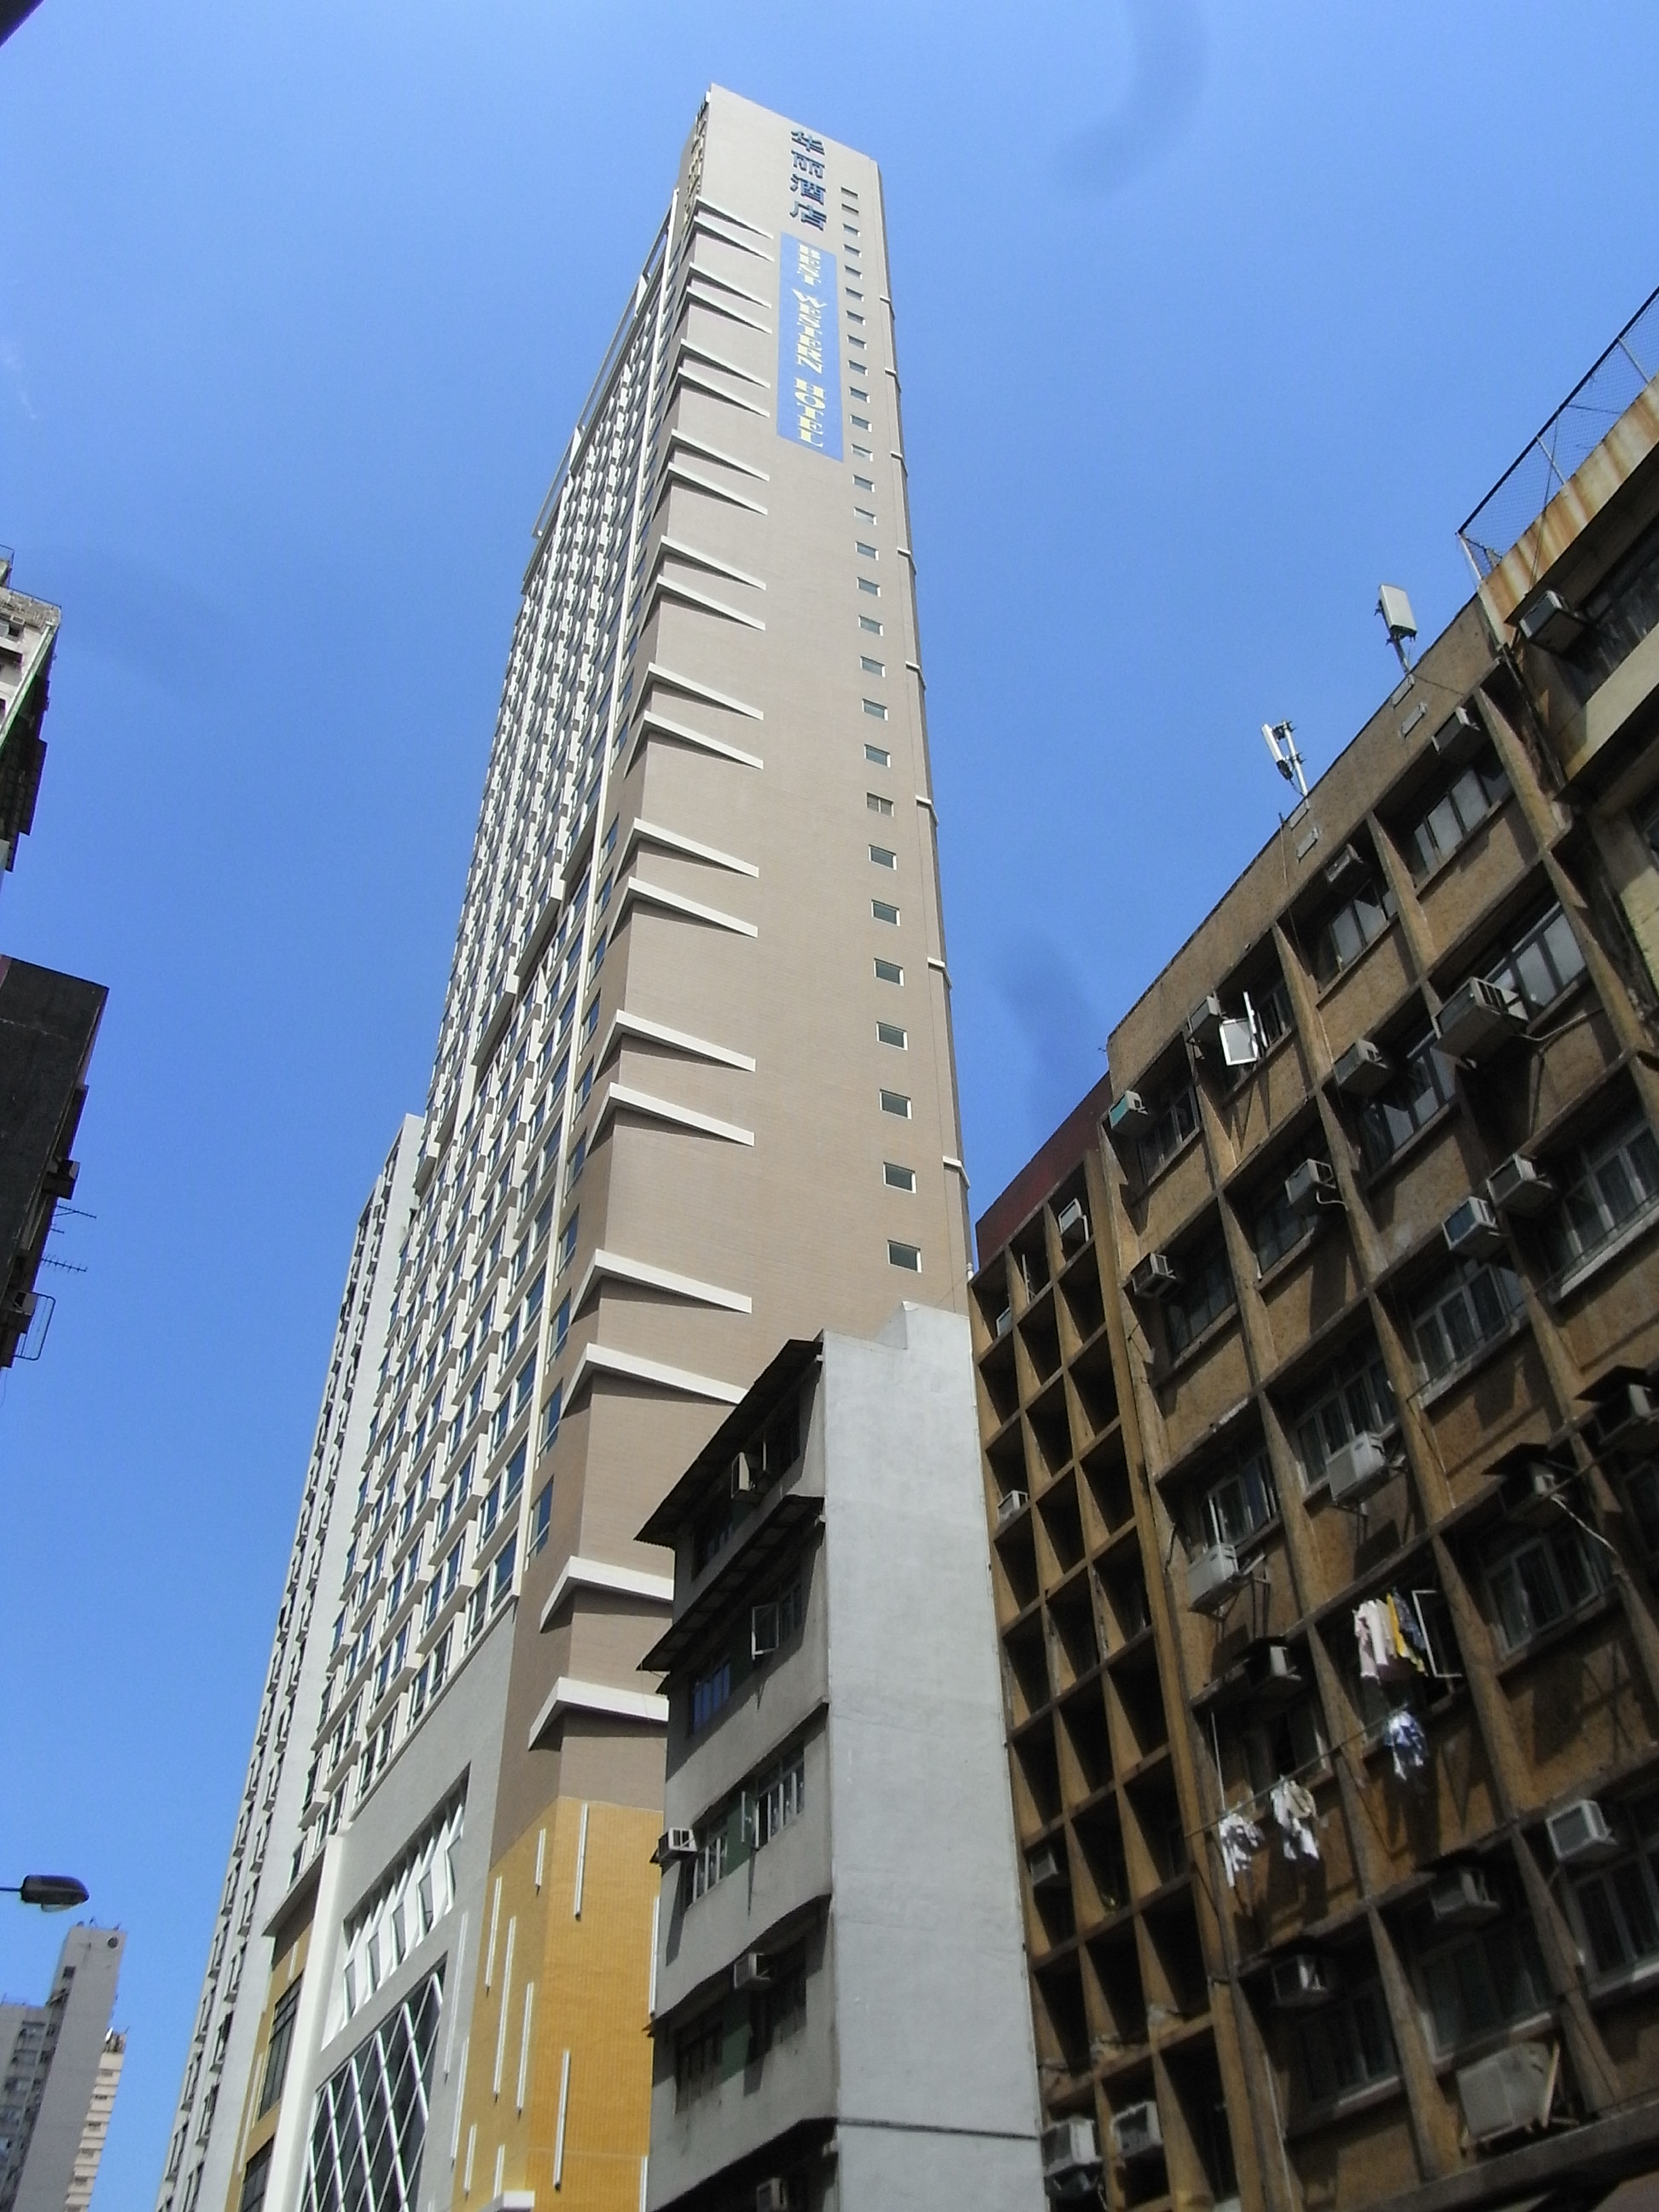 File:HK Sai Ying Pun 239 Queen